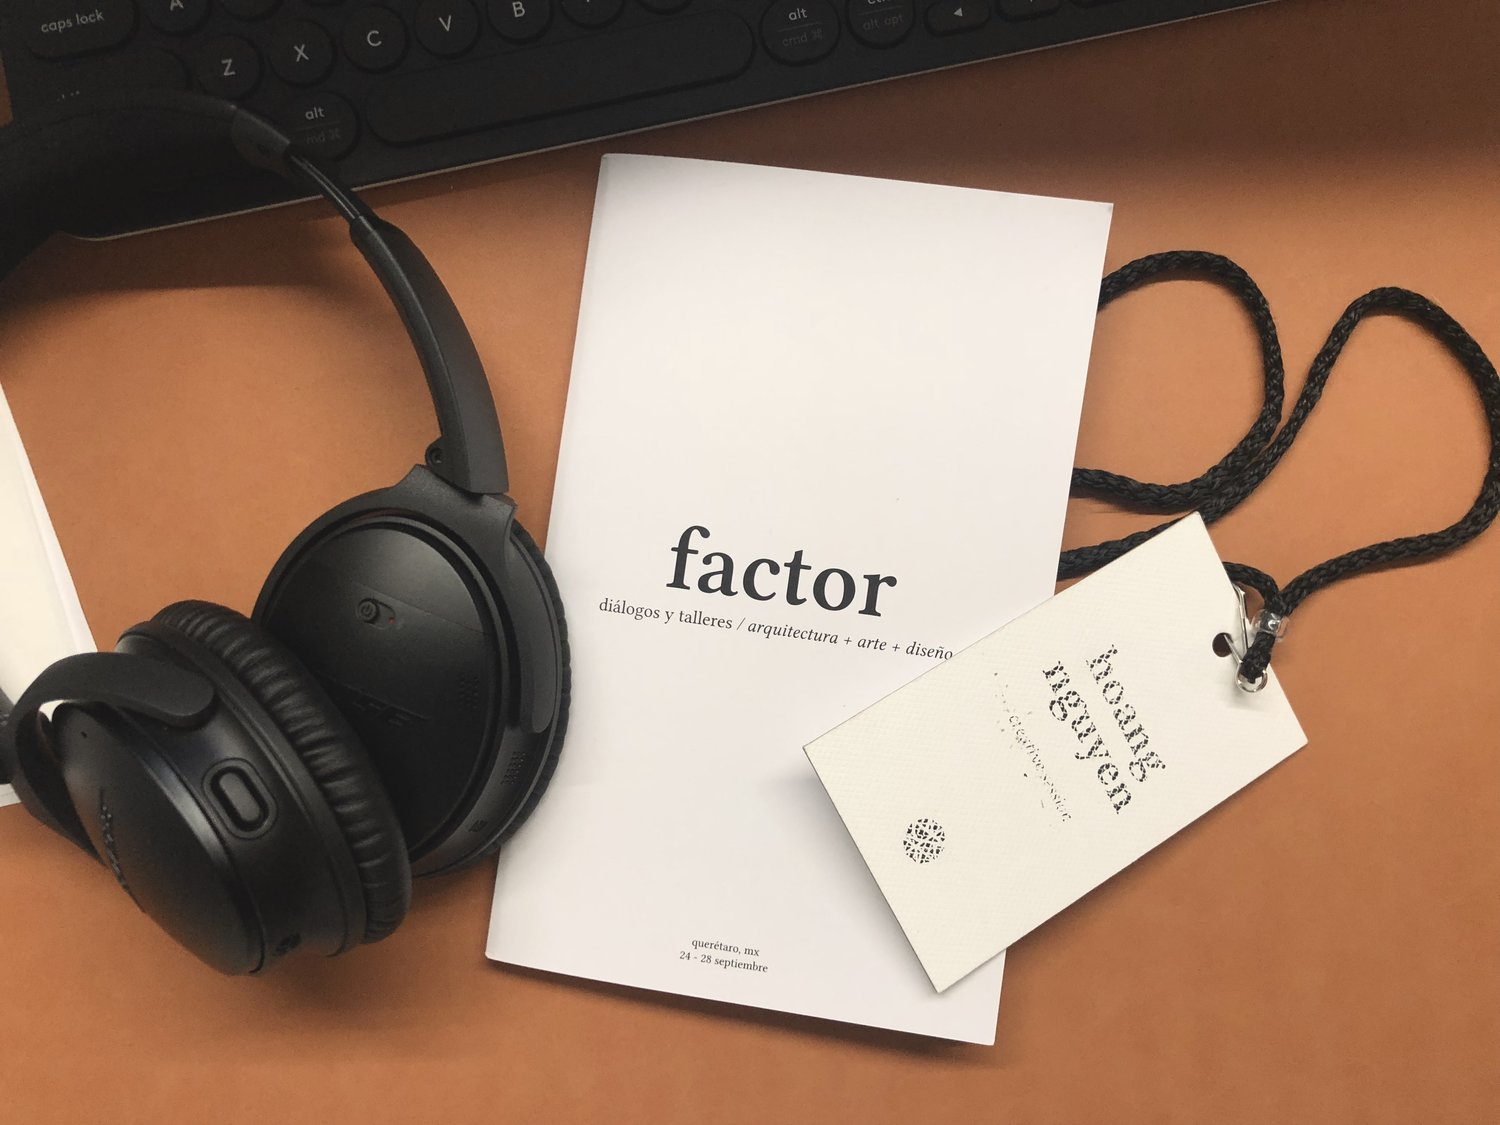 factor-congreso-queretaro-mexico-design-industrial-design-creative-session